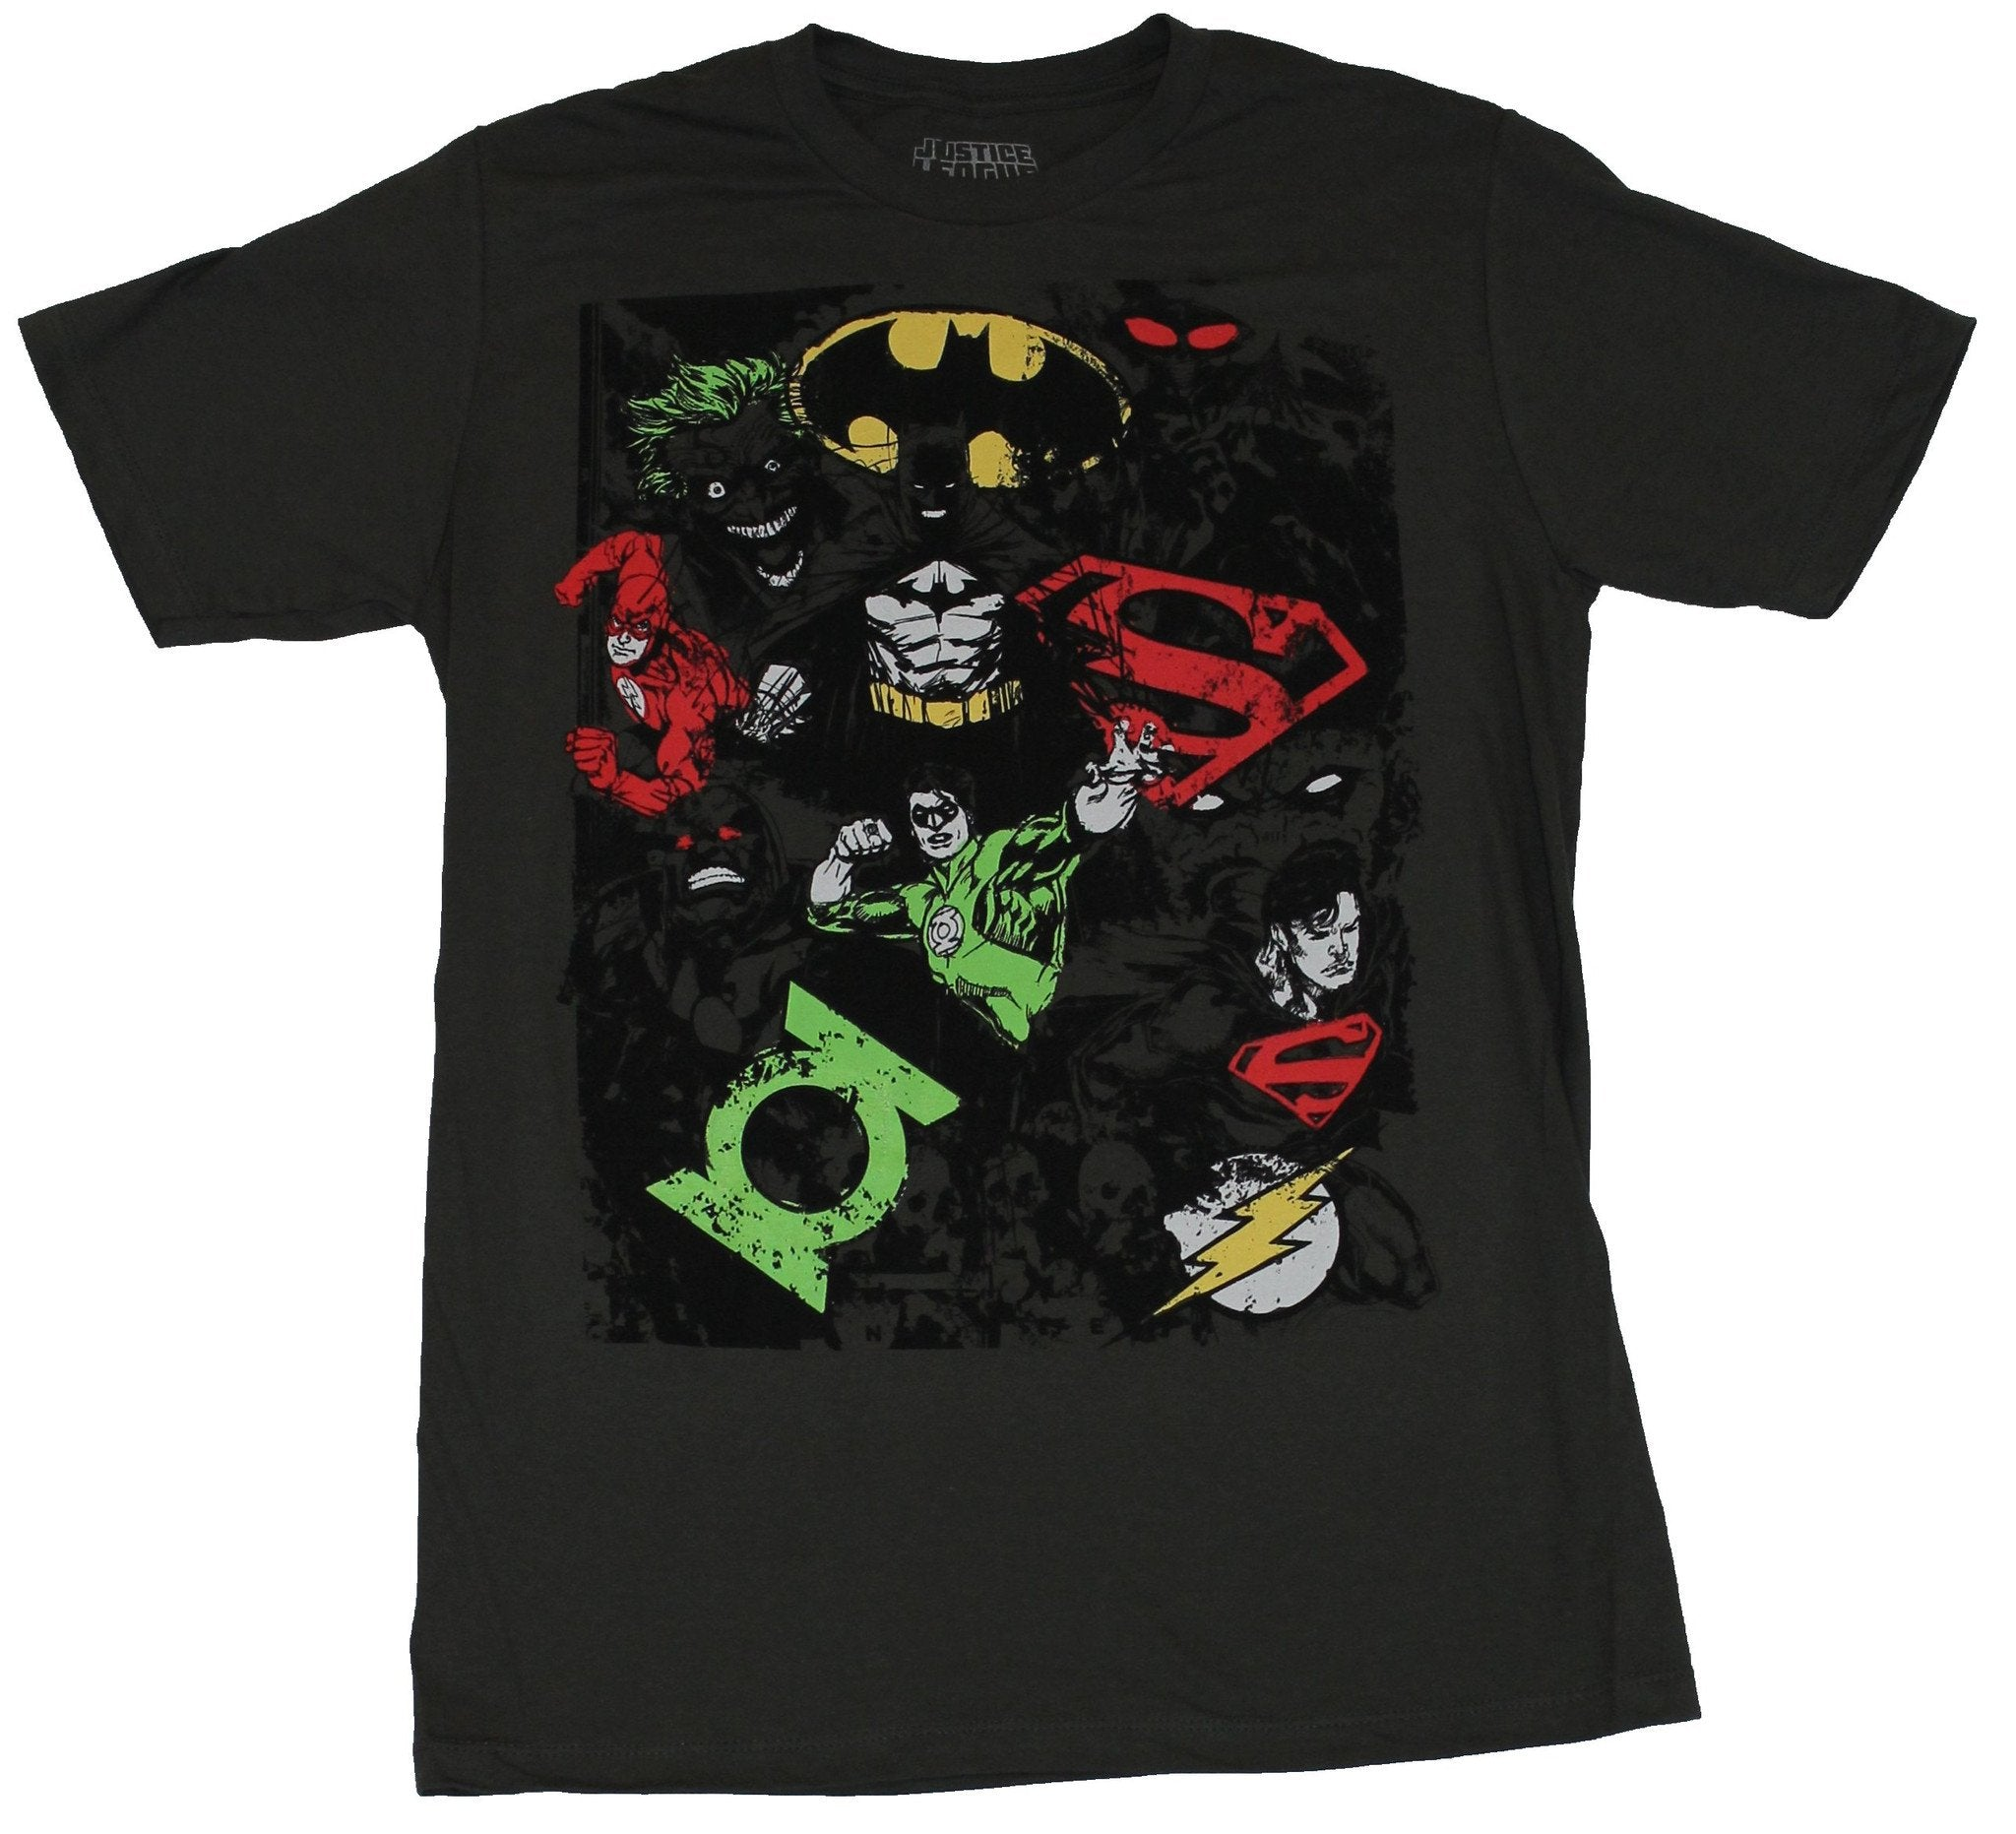 Justice League Mens T-Shirt - Distressed Sketchy Chaos Heroes Villains & Logos